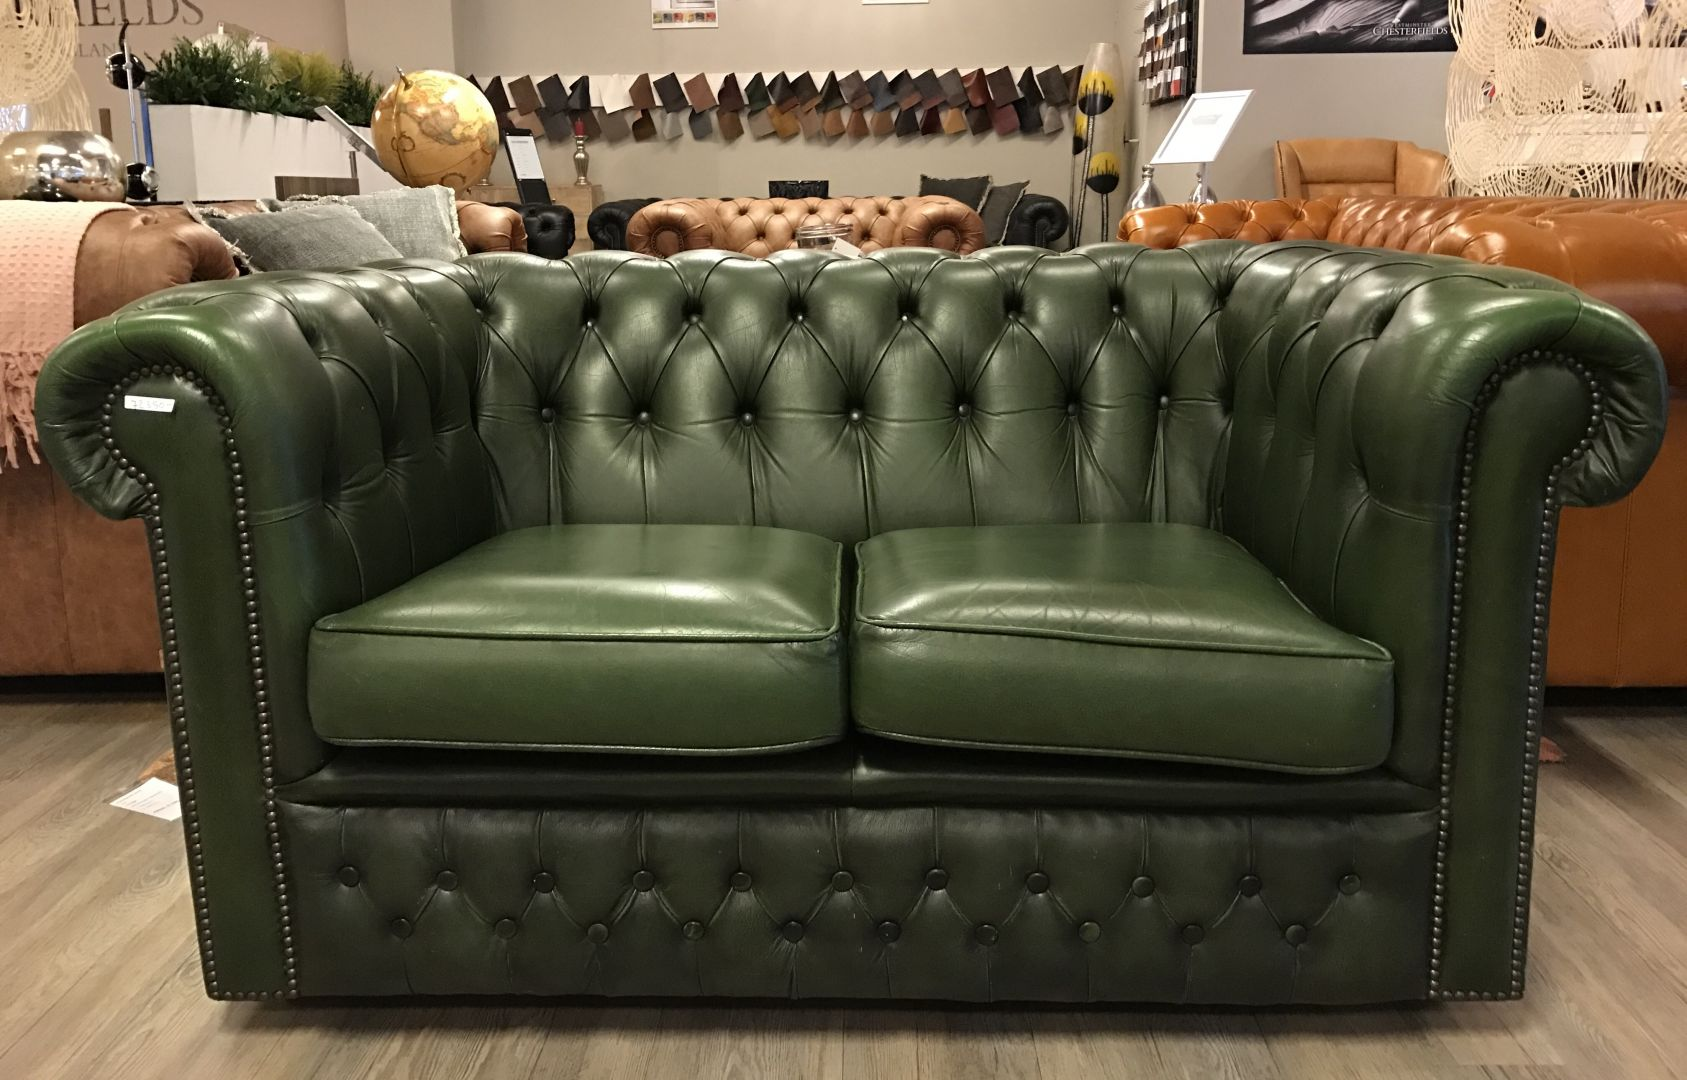 Chesterfield Bank Engelse Chesterfield Zithoek 2 Zits Bank 43 Club Fauteuil